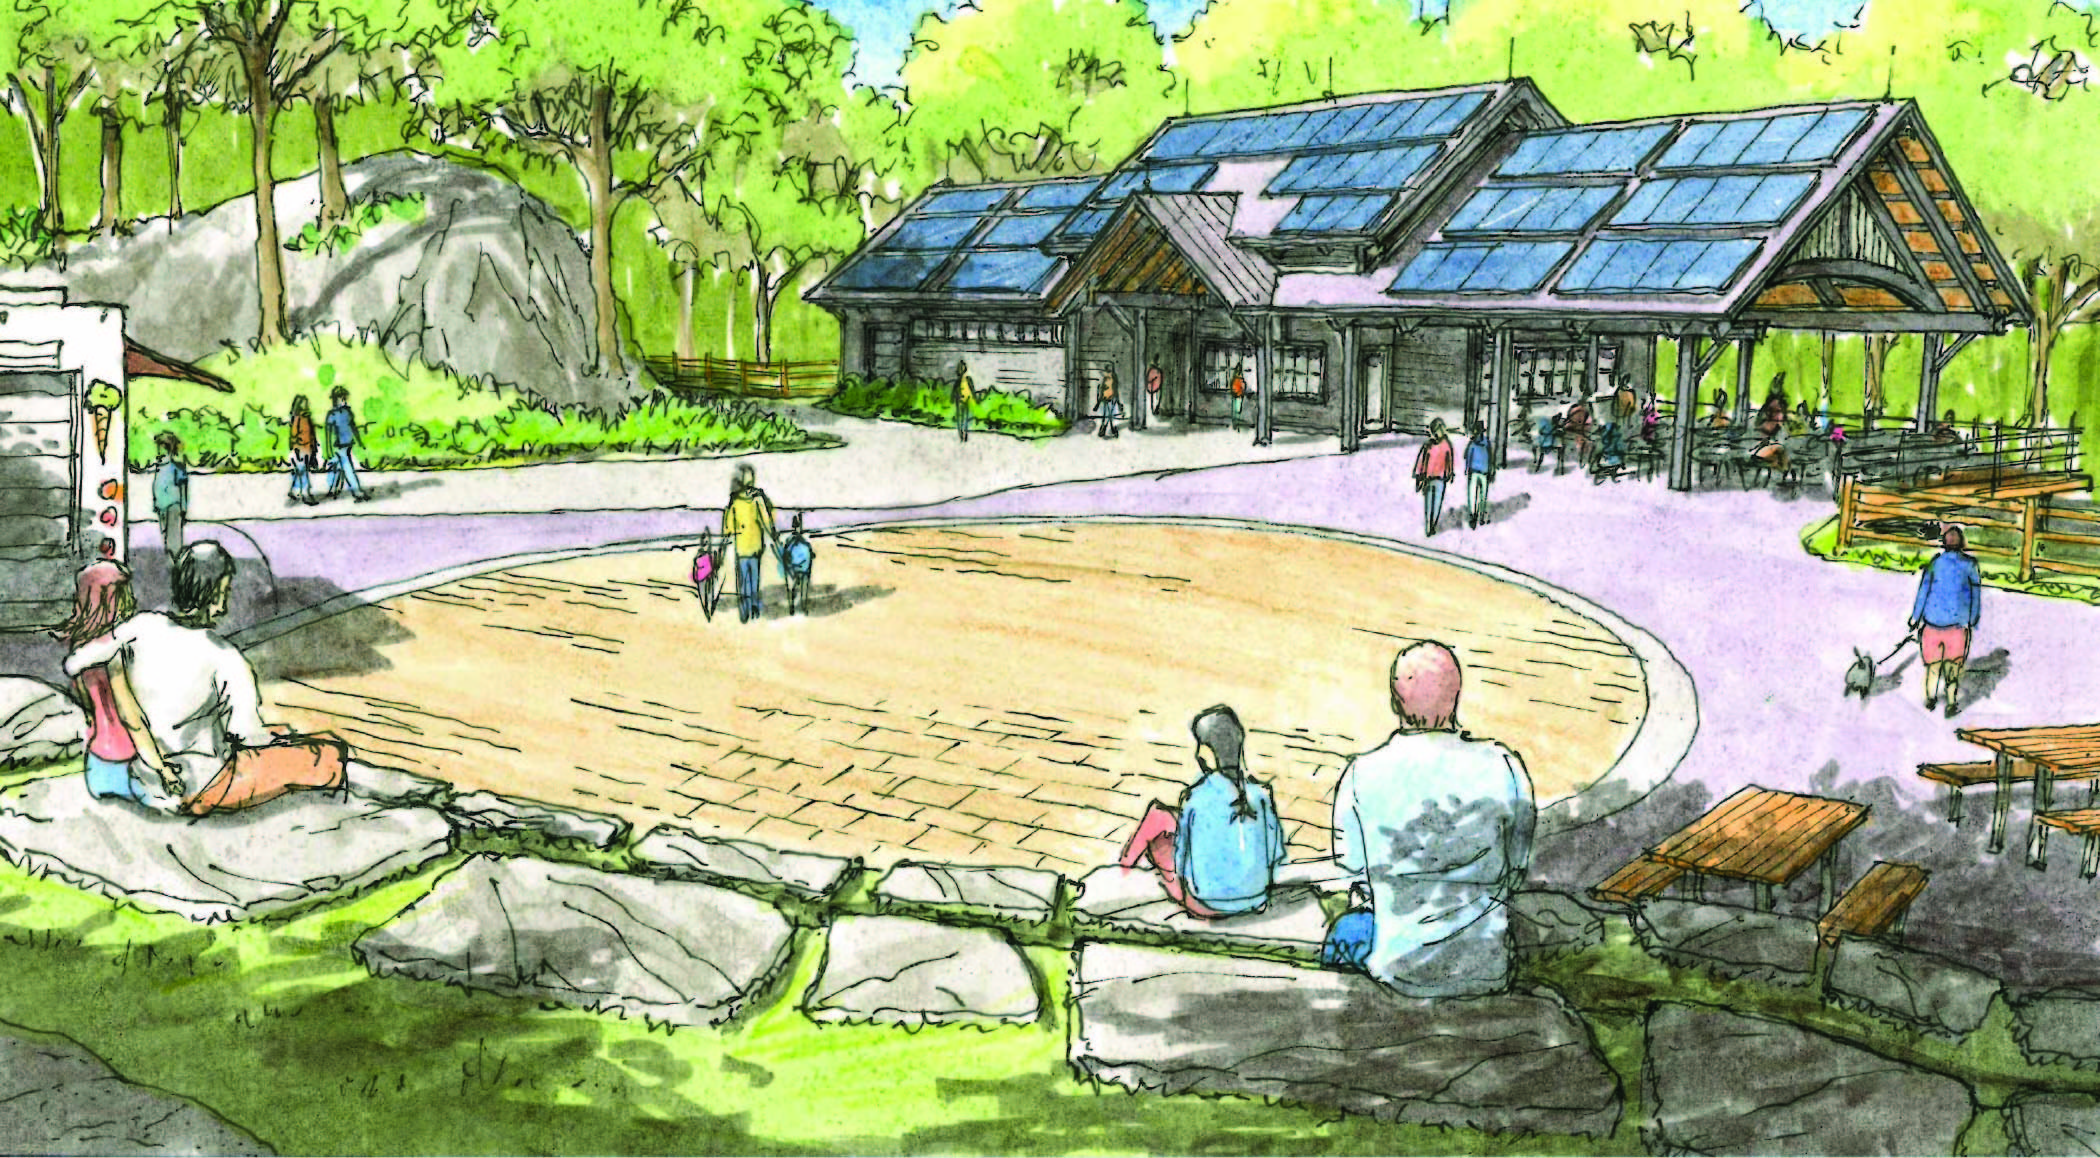 Sketch Rendering of the Ulster Welcome Center